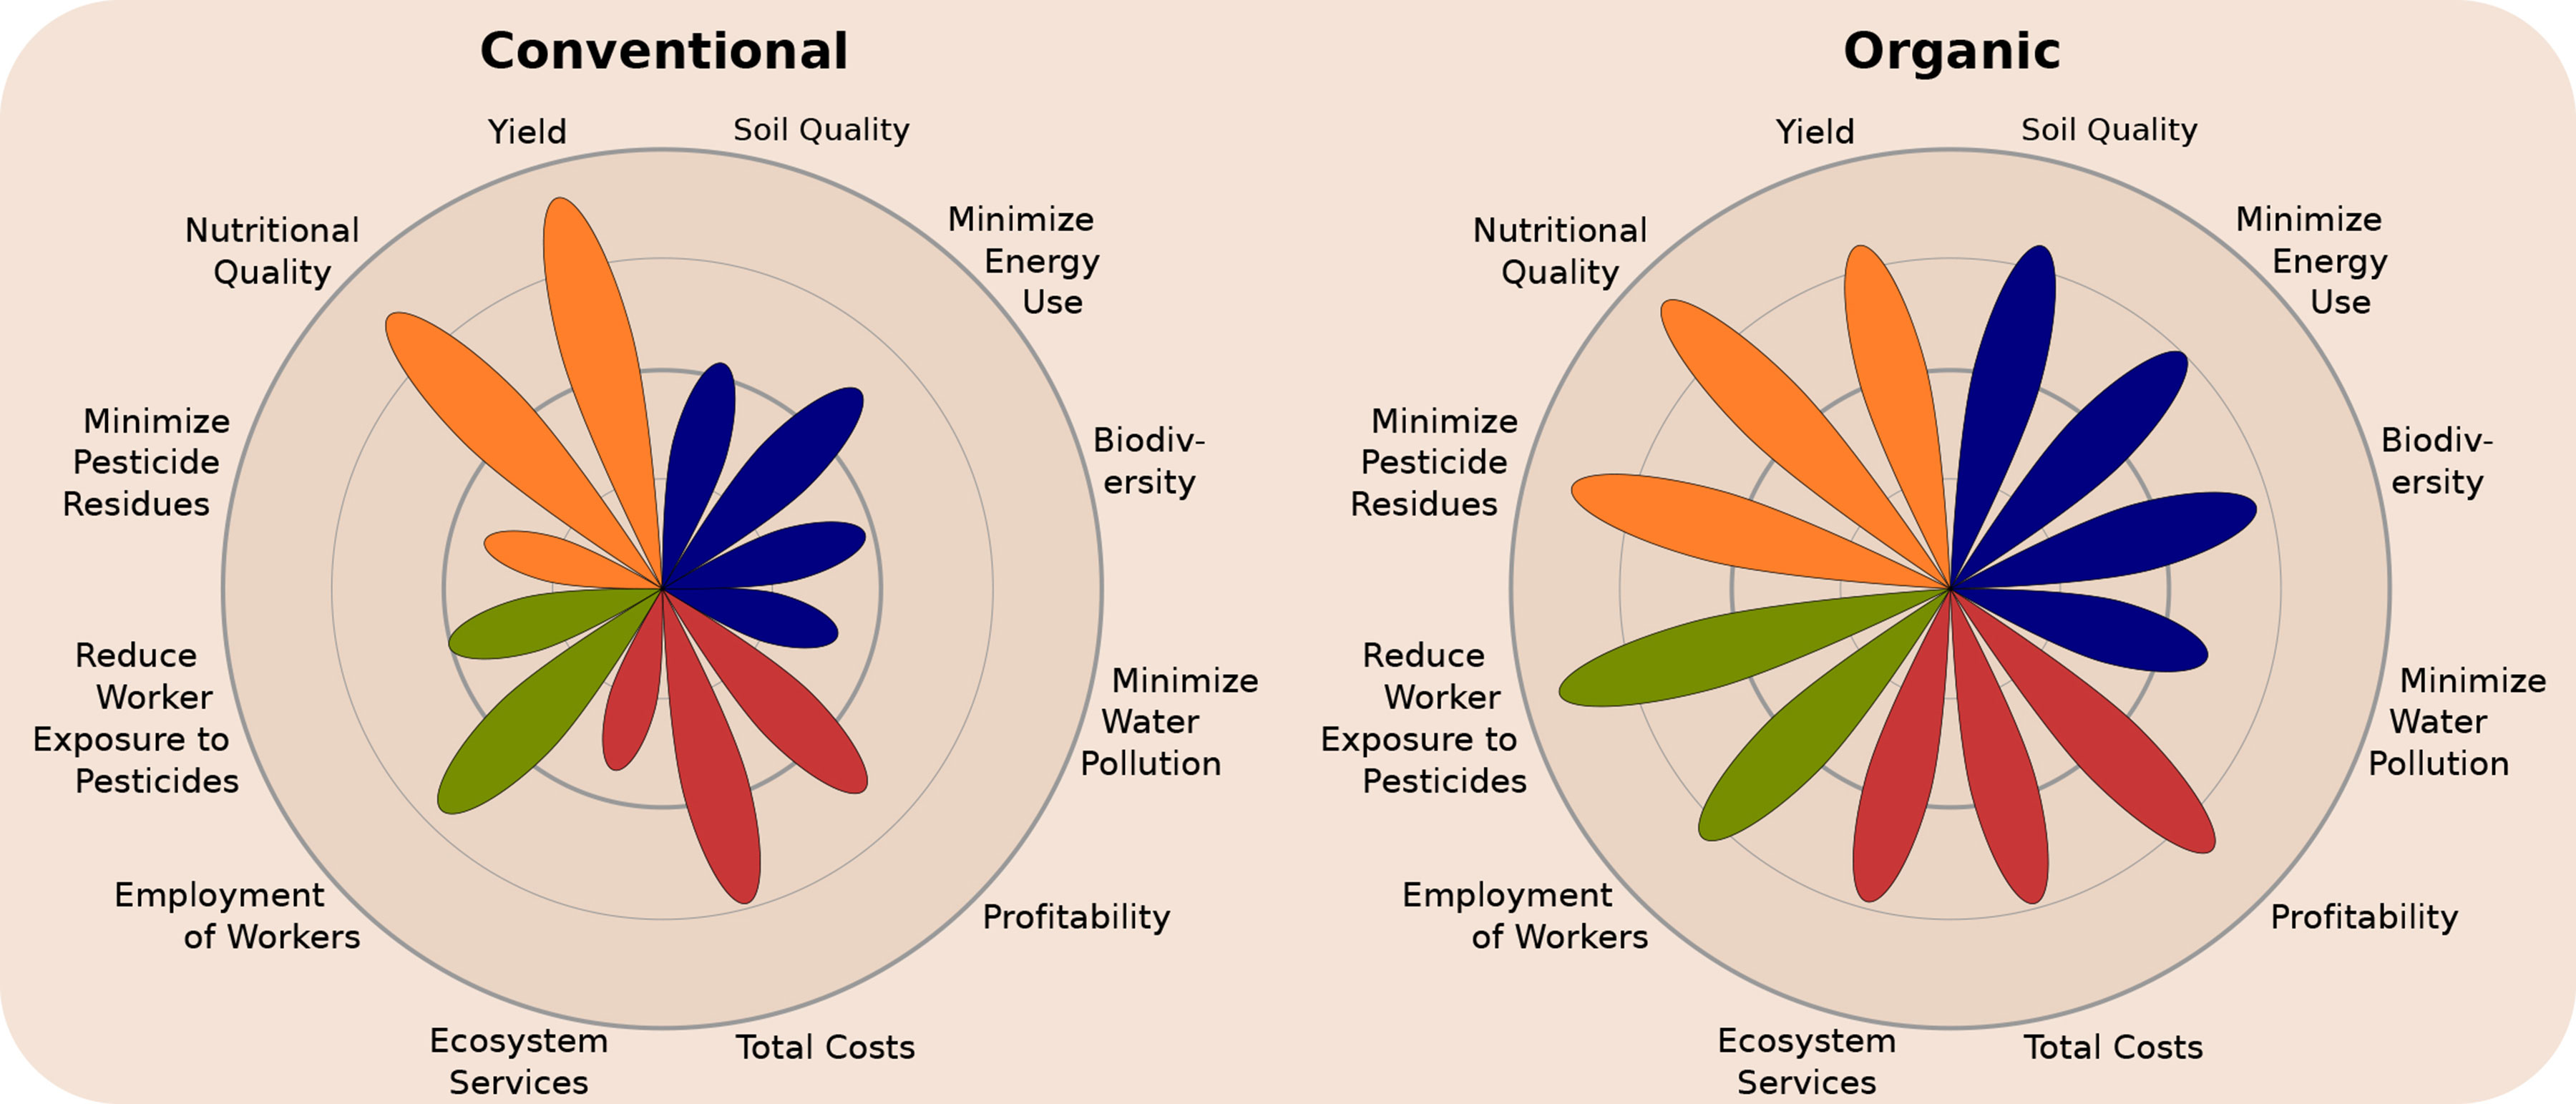 Comparison chart of ecological, environmental, and economic benefits in conventional and organic agriculture.